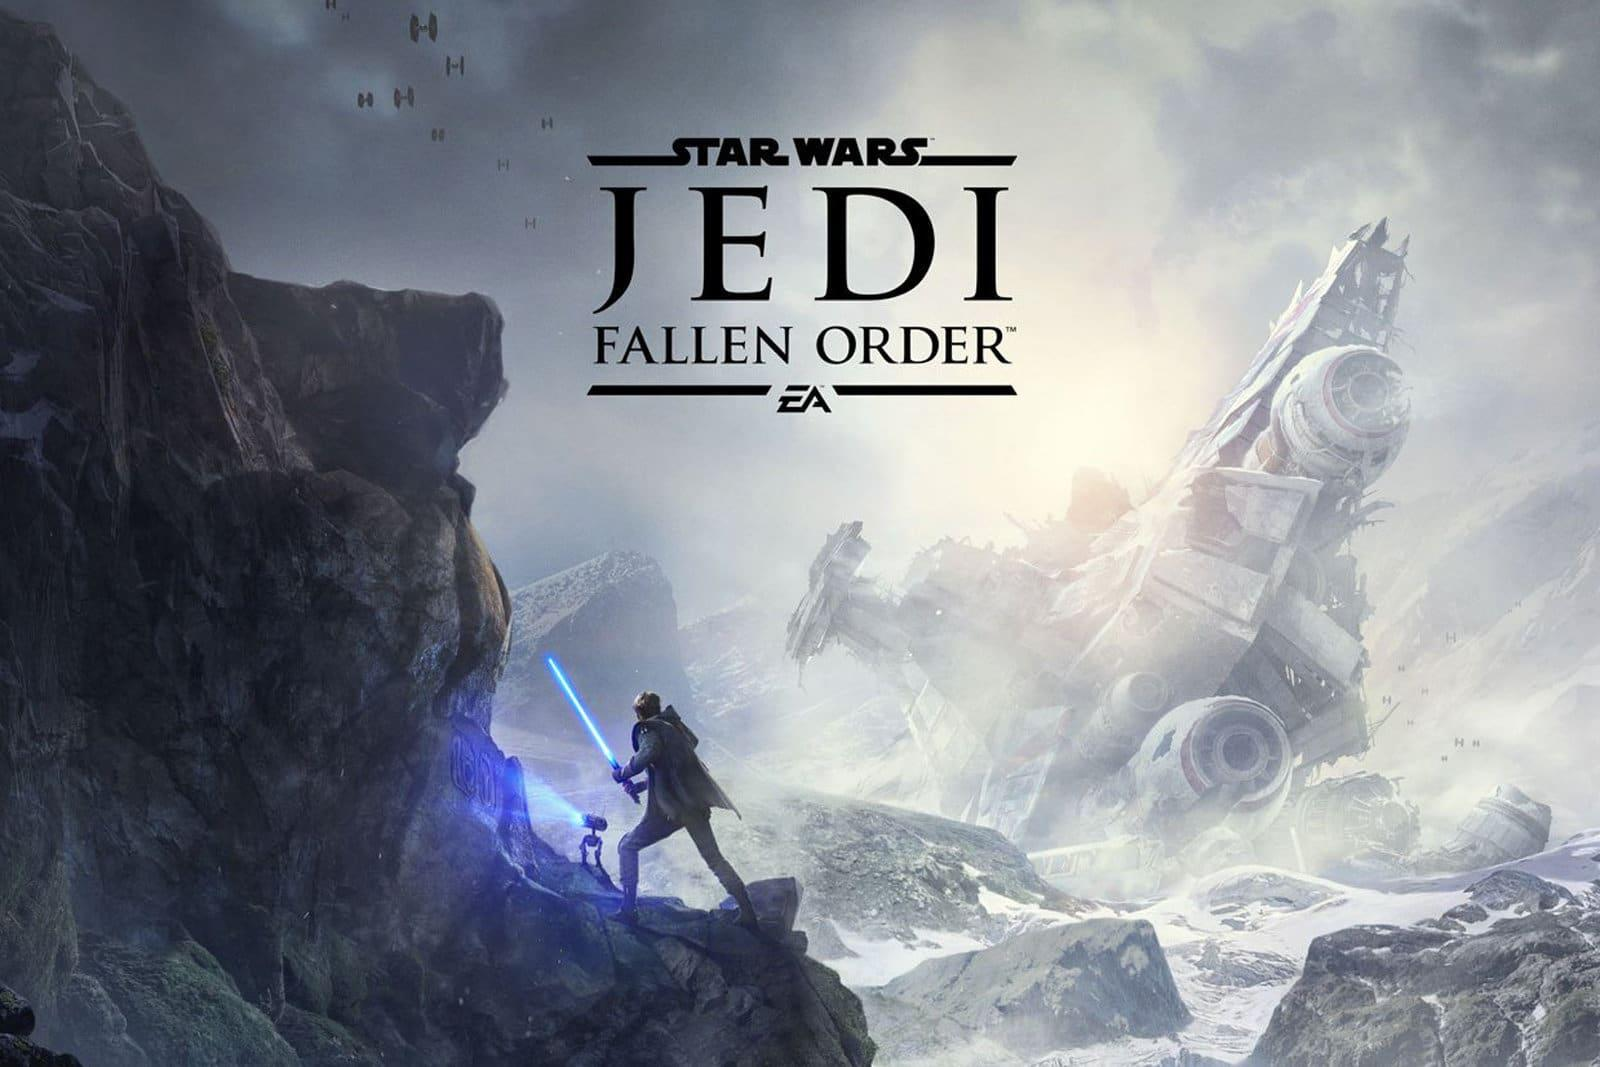 Star Wars Jedi Fallen Order Trailer Teases New Story Details Engadget